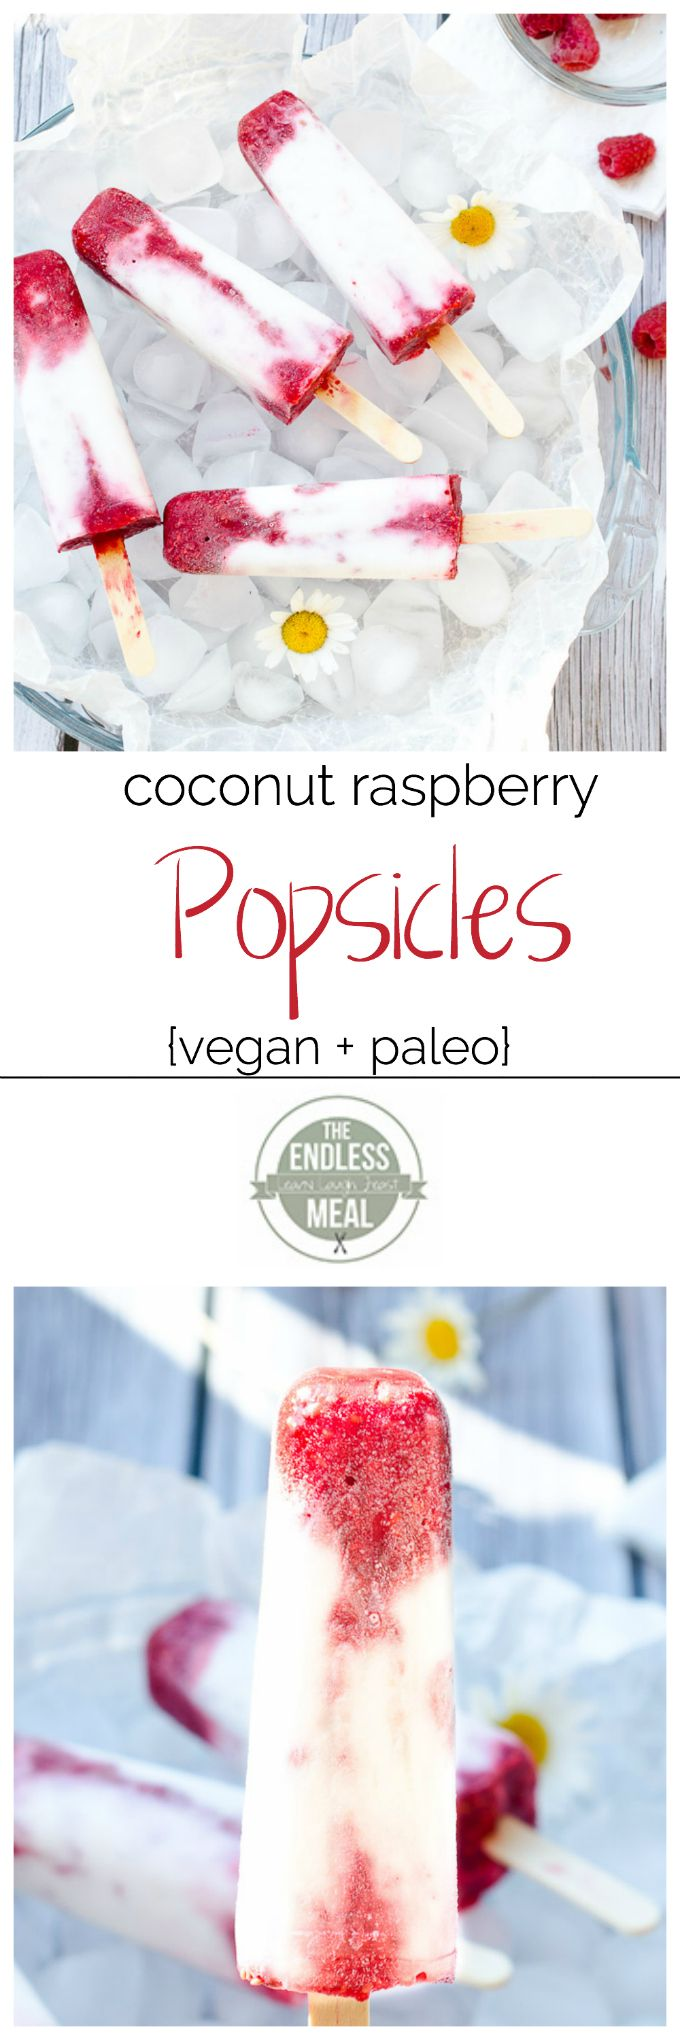 Coconut Raspberry Popsicles: 1 cup fresh raspberries; 3 teaspoons honey, divided; 1 cup full-fat coconut milk - without guar gum is best |